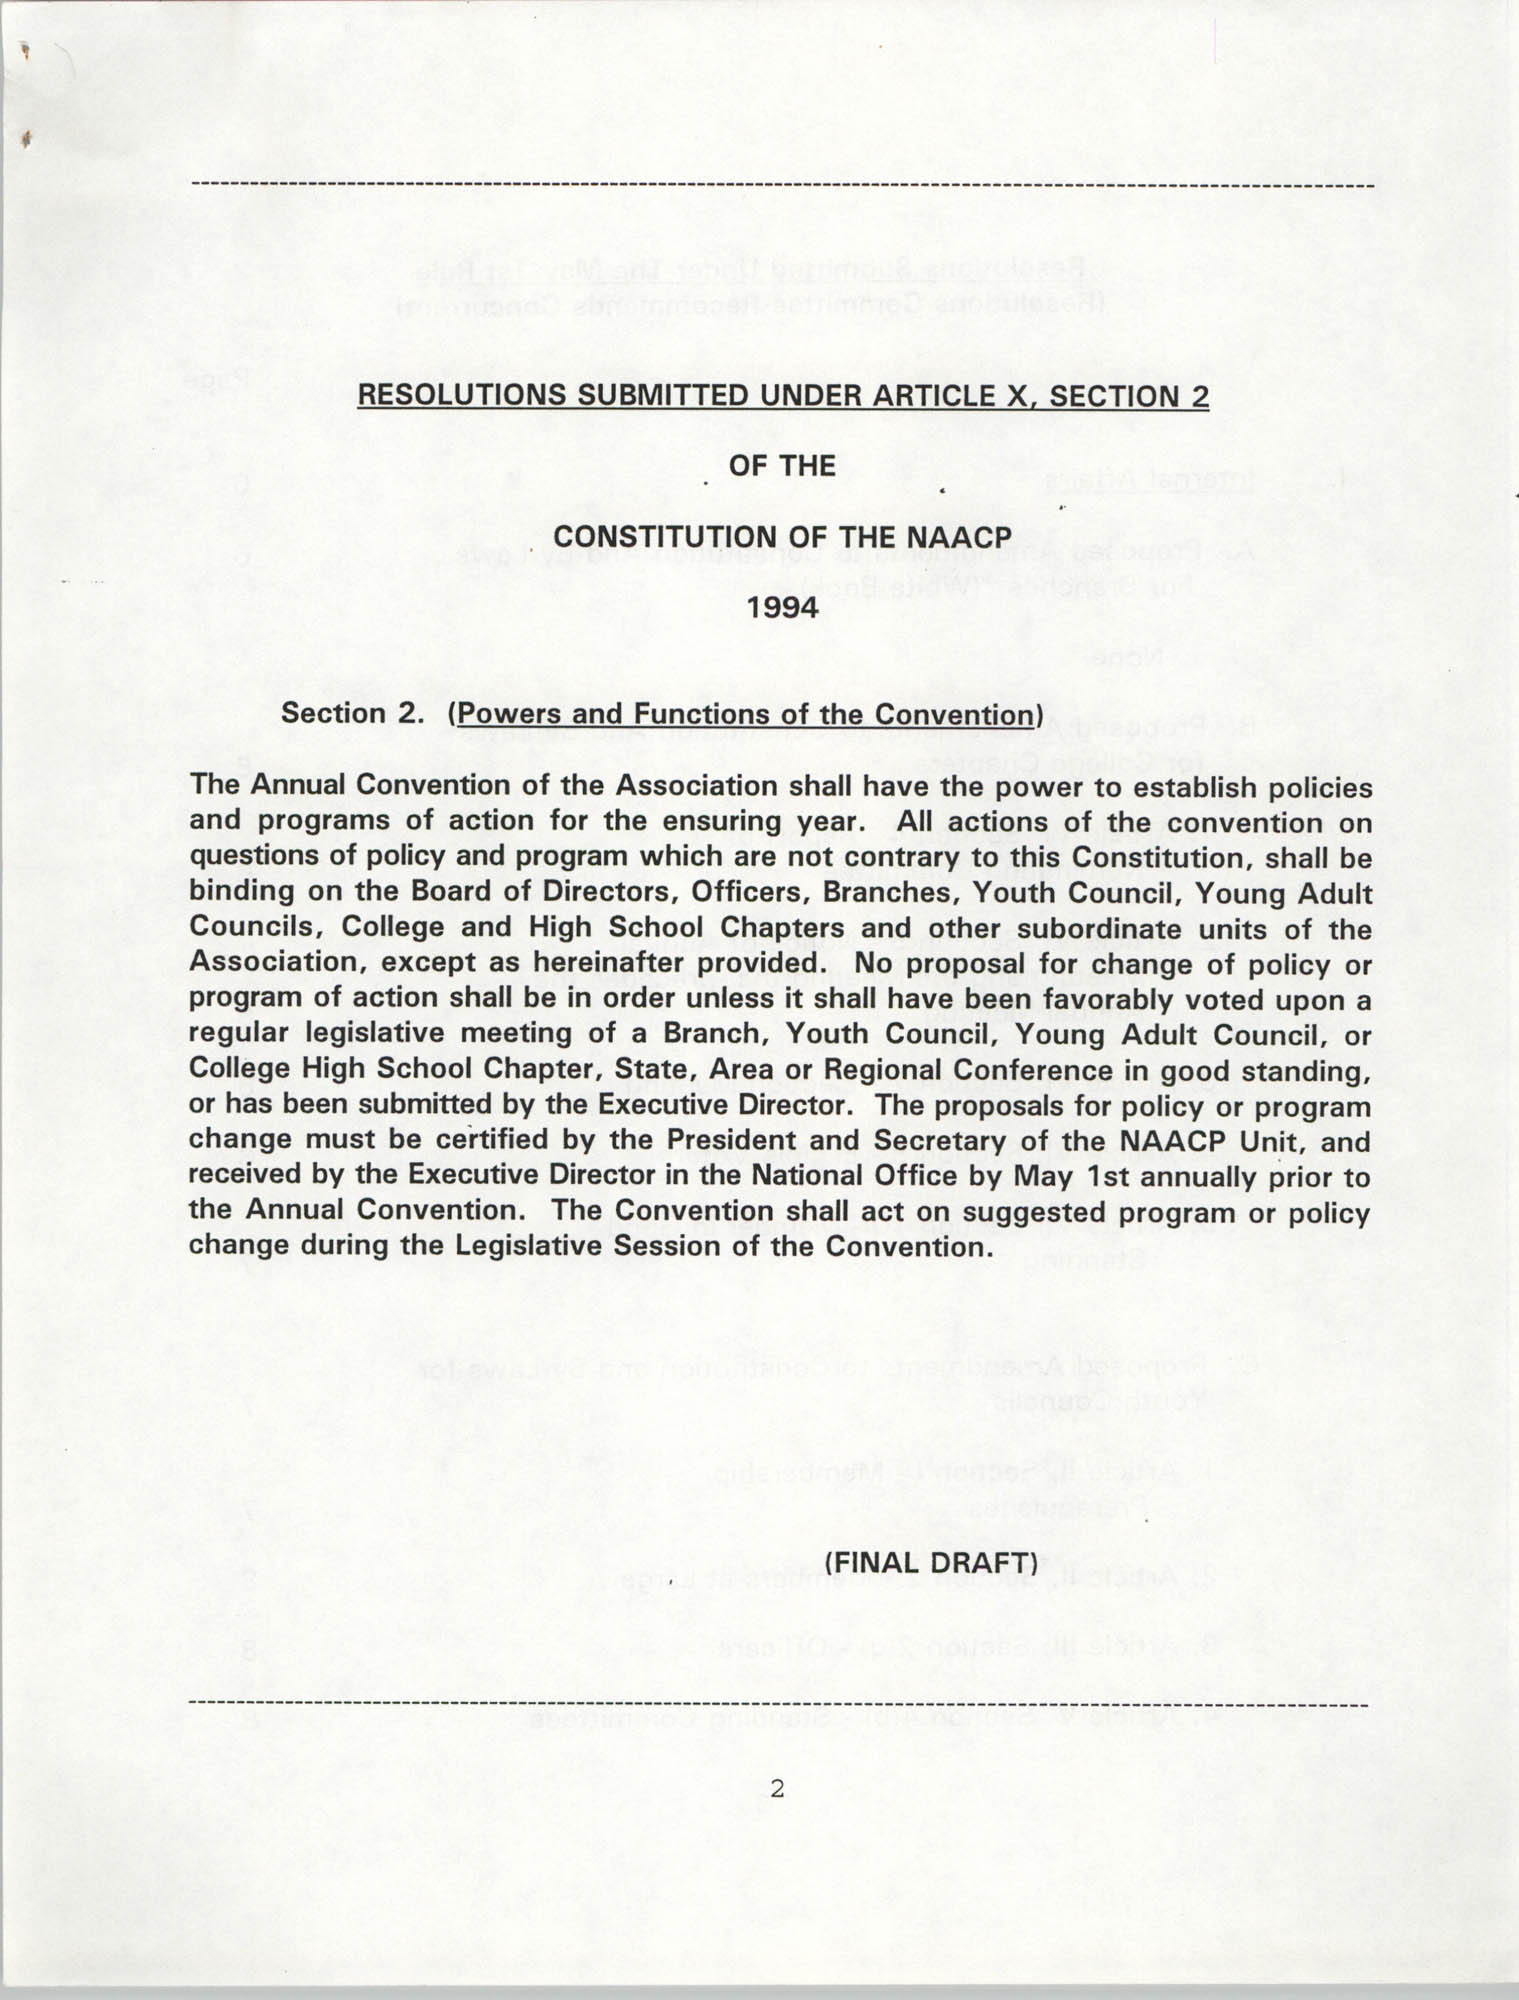 Resolutions Submitted Under Article X, Section 2 of the Constitution of the NAACP, 1994, Page 2